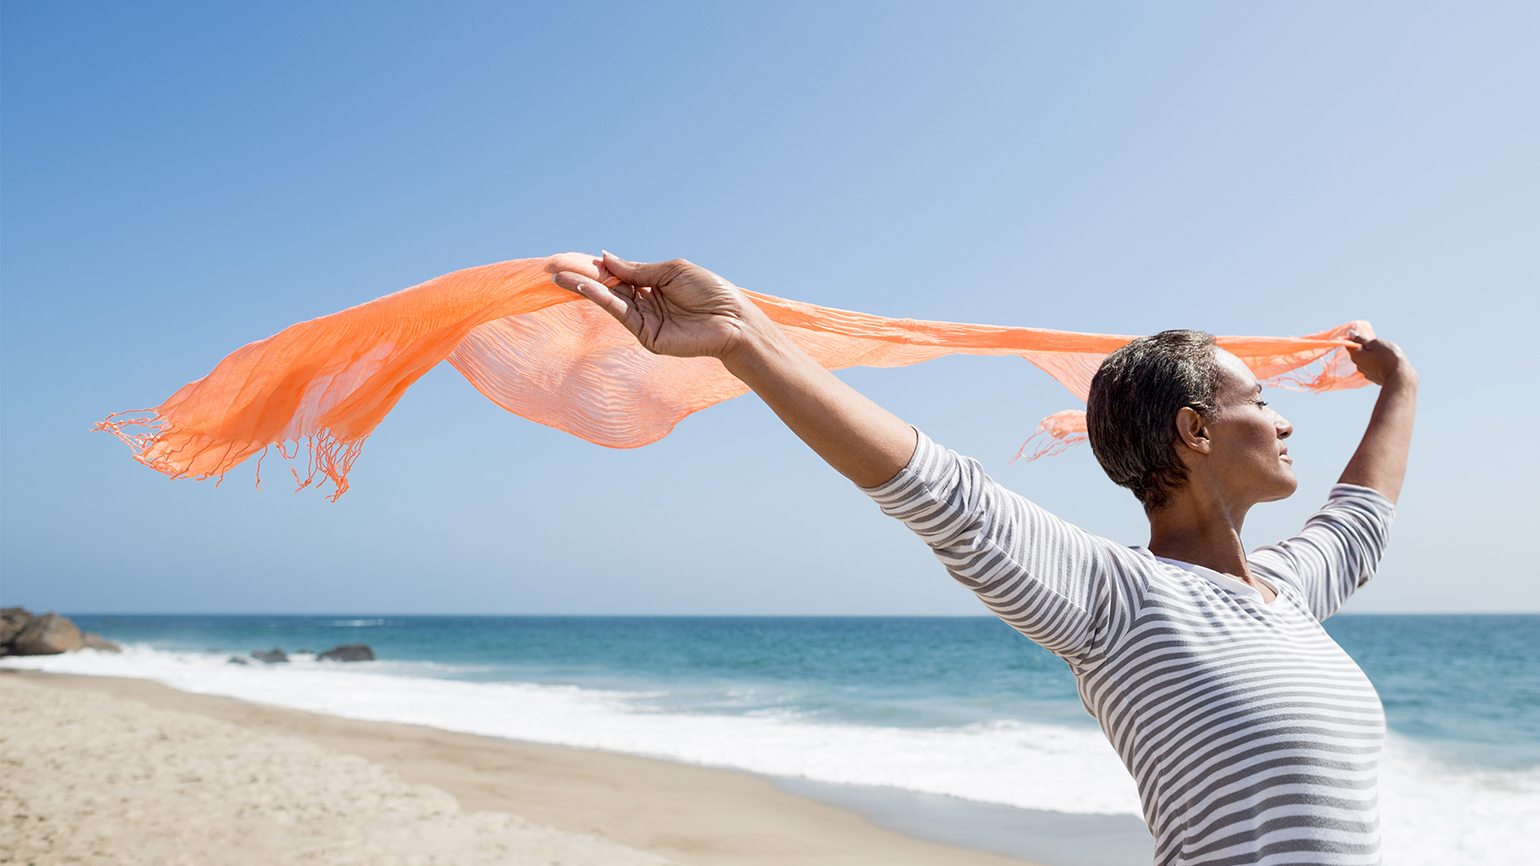 A woman on a beach lets her scarf wave in the breeze